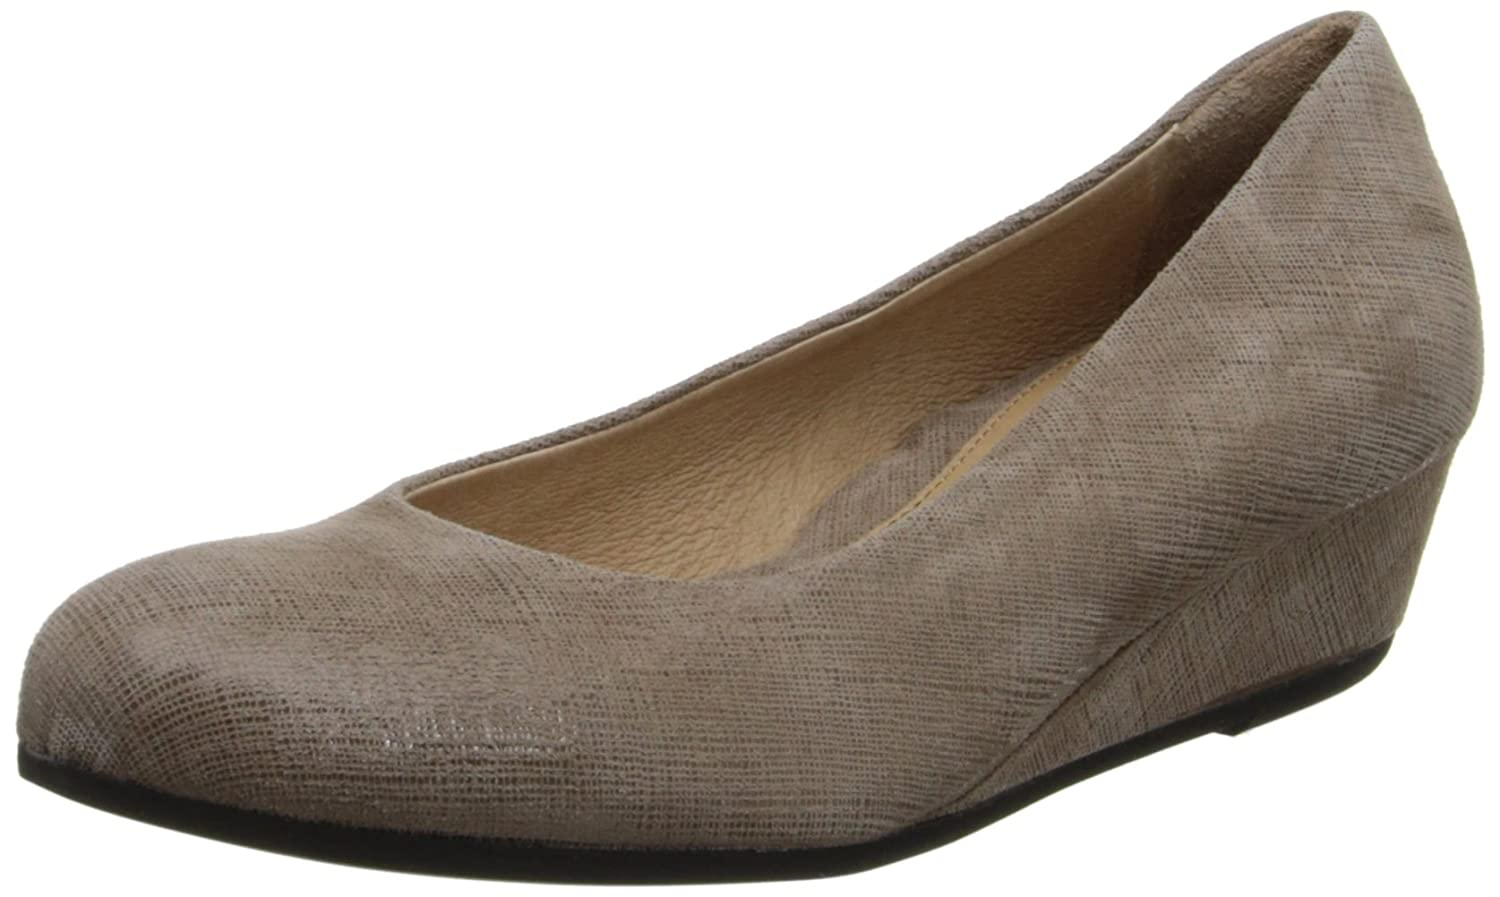 French Sole FS/NY Women's Gumdrop Wedge Pump B00C40X344 8 B(M) US|Taupe Cartizze